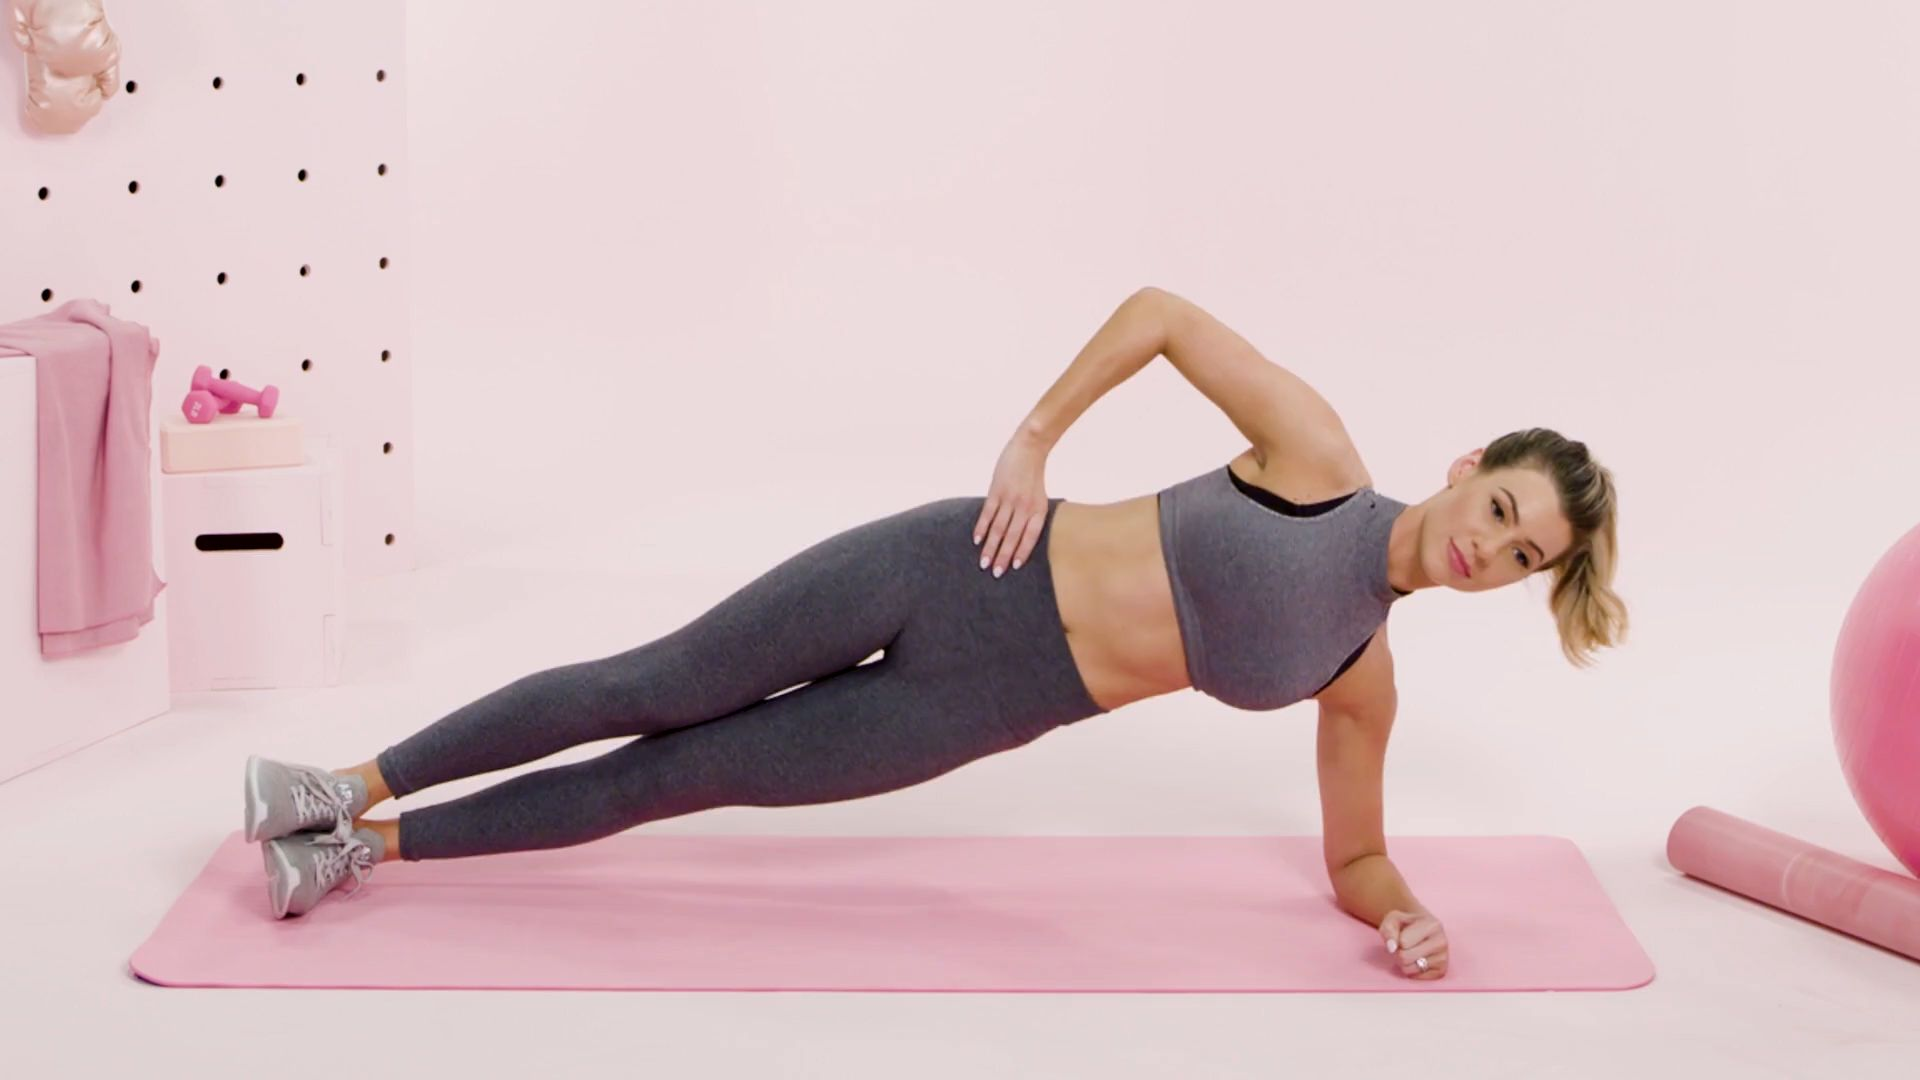 How To Do A Side Plank Exercise - Side Plank Variations